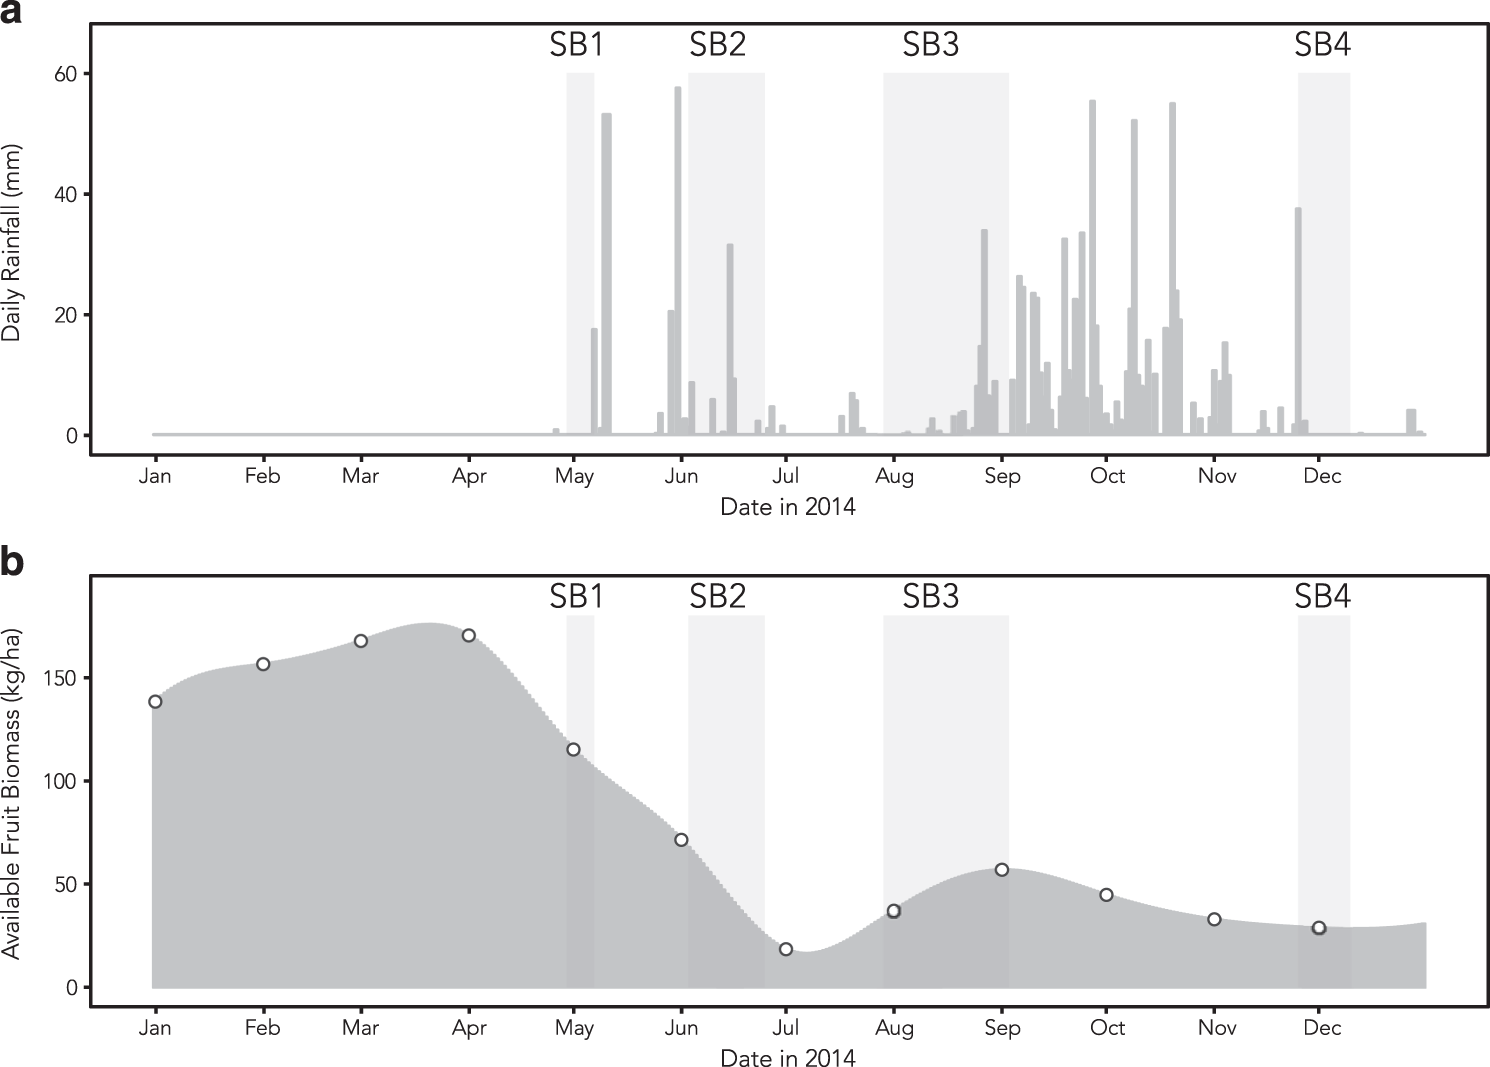 Seasonality of the gut microbiota of free-ranging white-faced